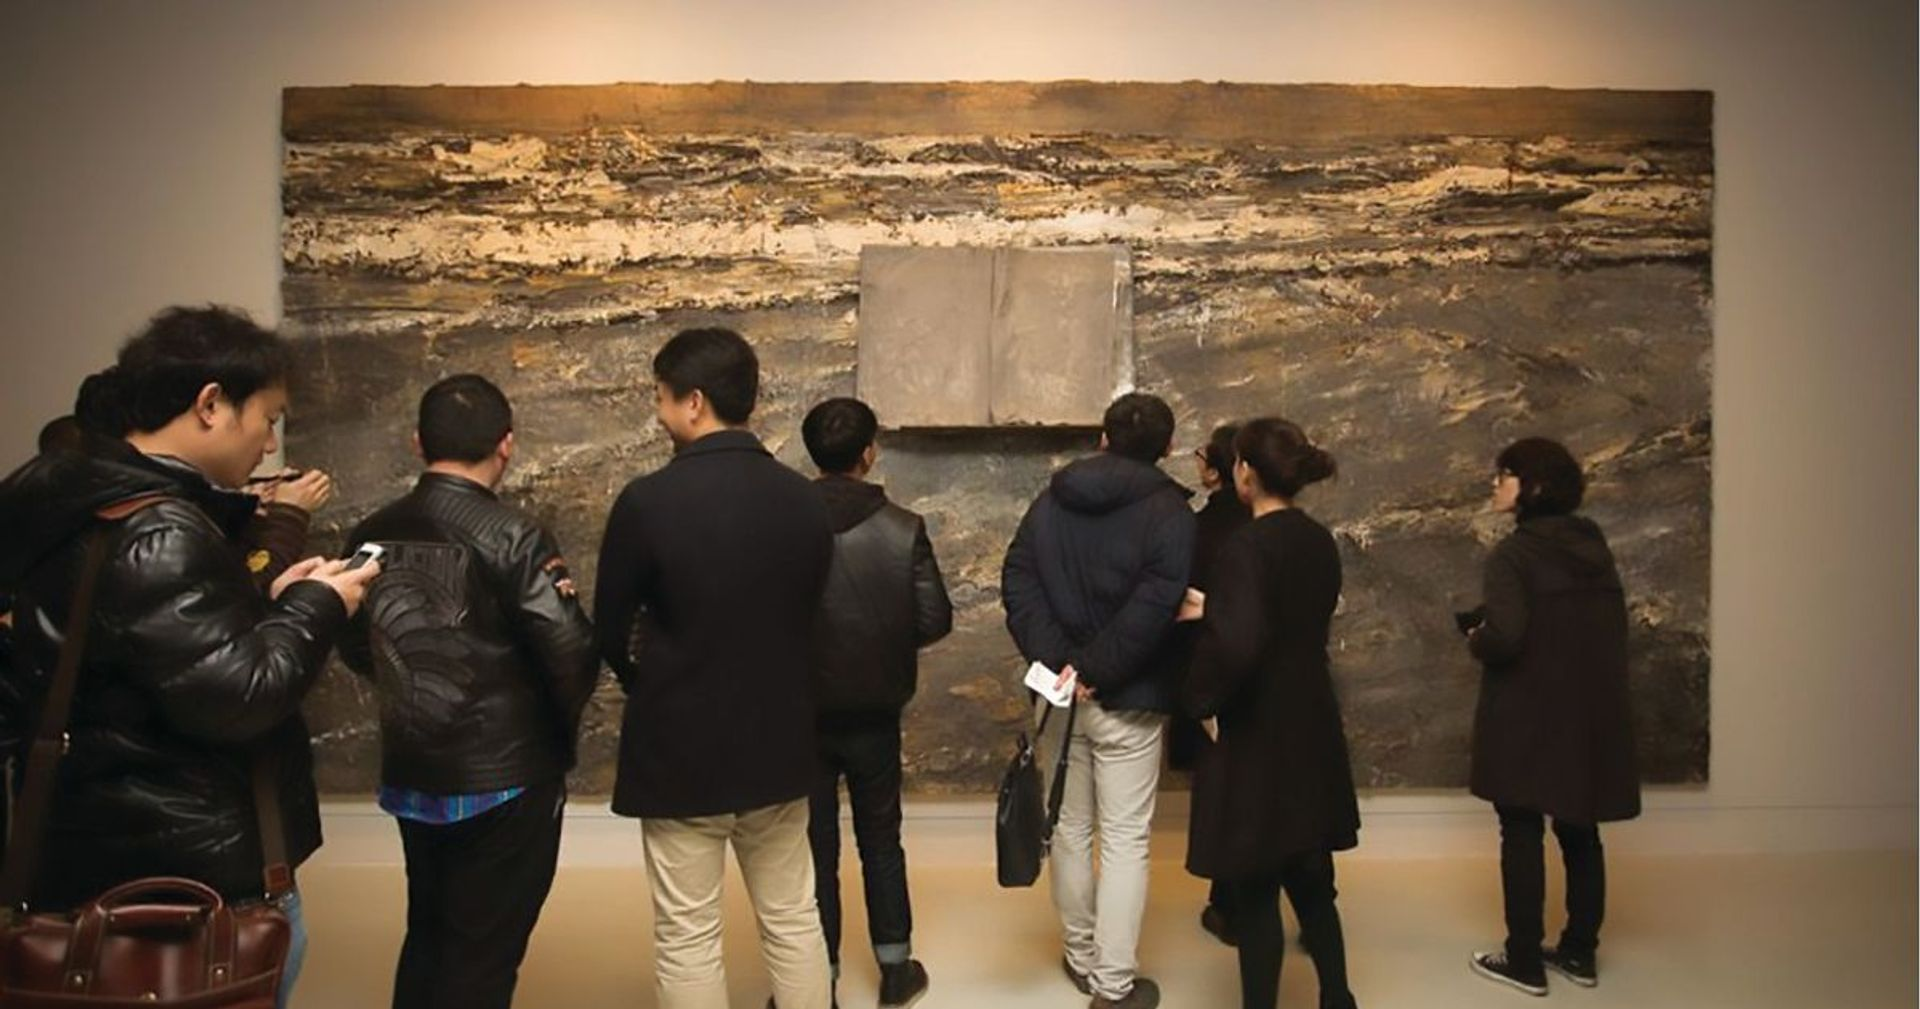 Bell Art staged a controversial exhibition of Anselm Kiefer's work in Beijing in 2016 for which the artist did not give his consent